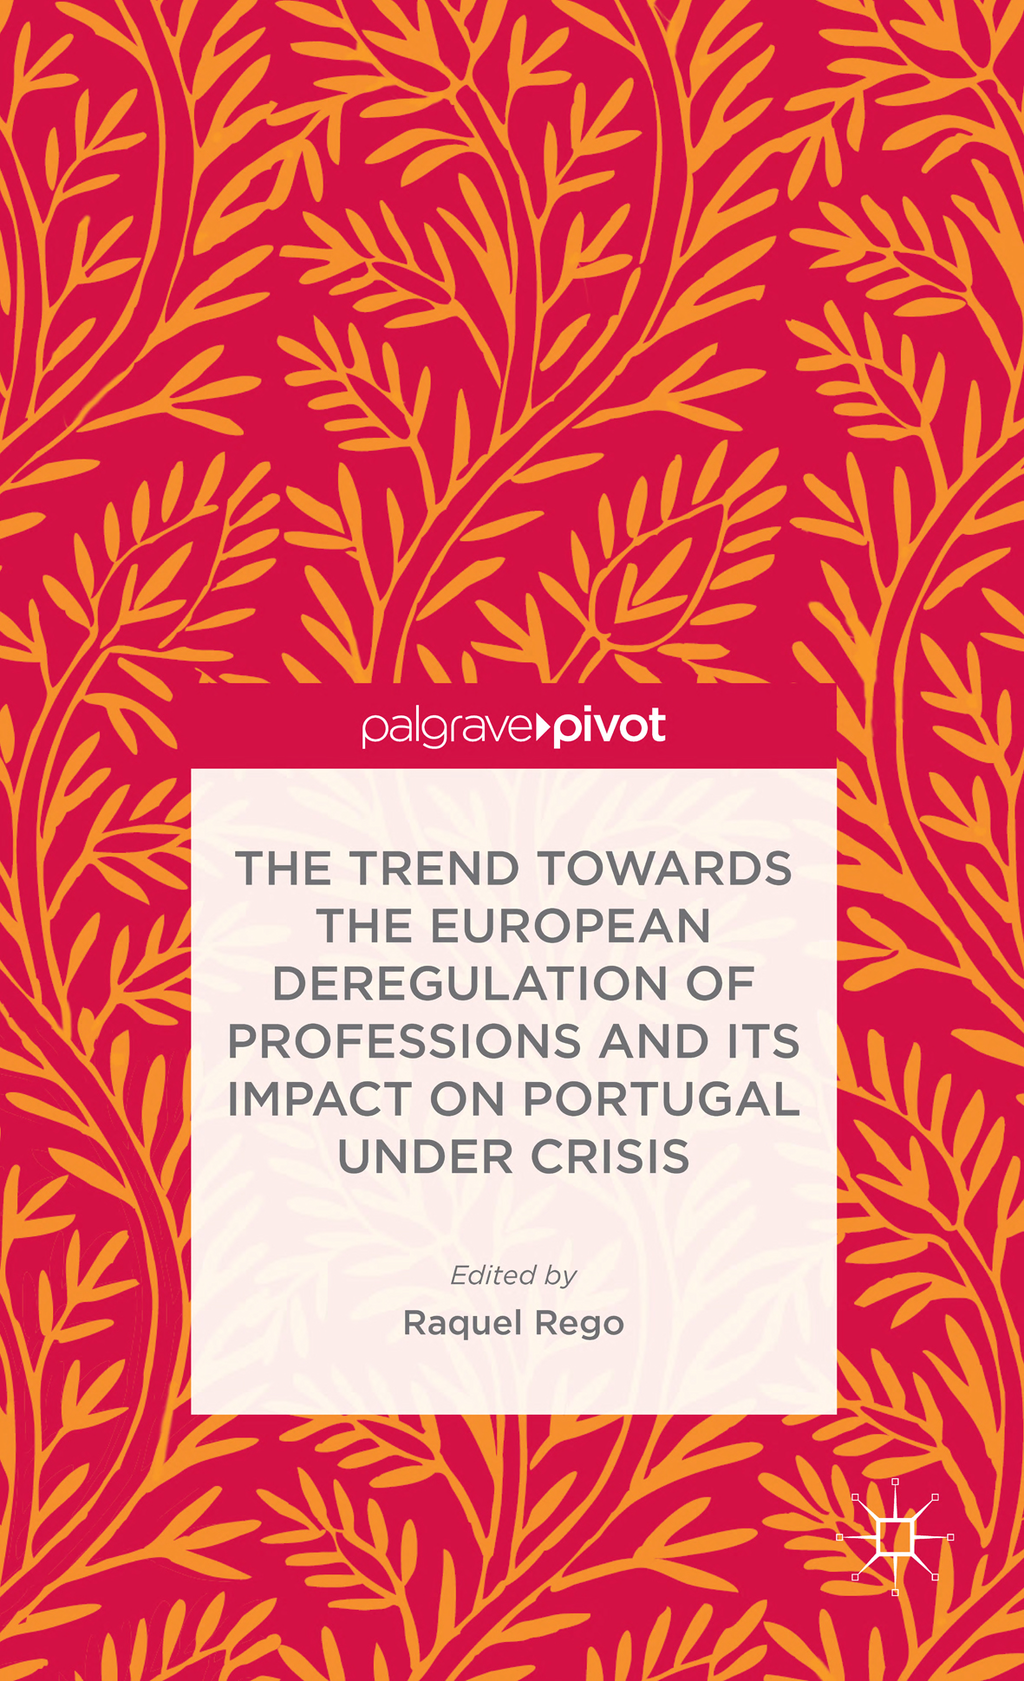 The Trend Towards the European Deregulation of Professions and its Impact on Portugal Under Crisis